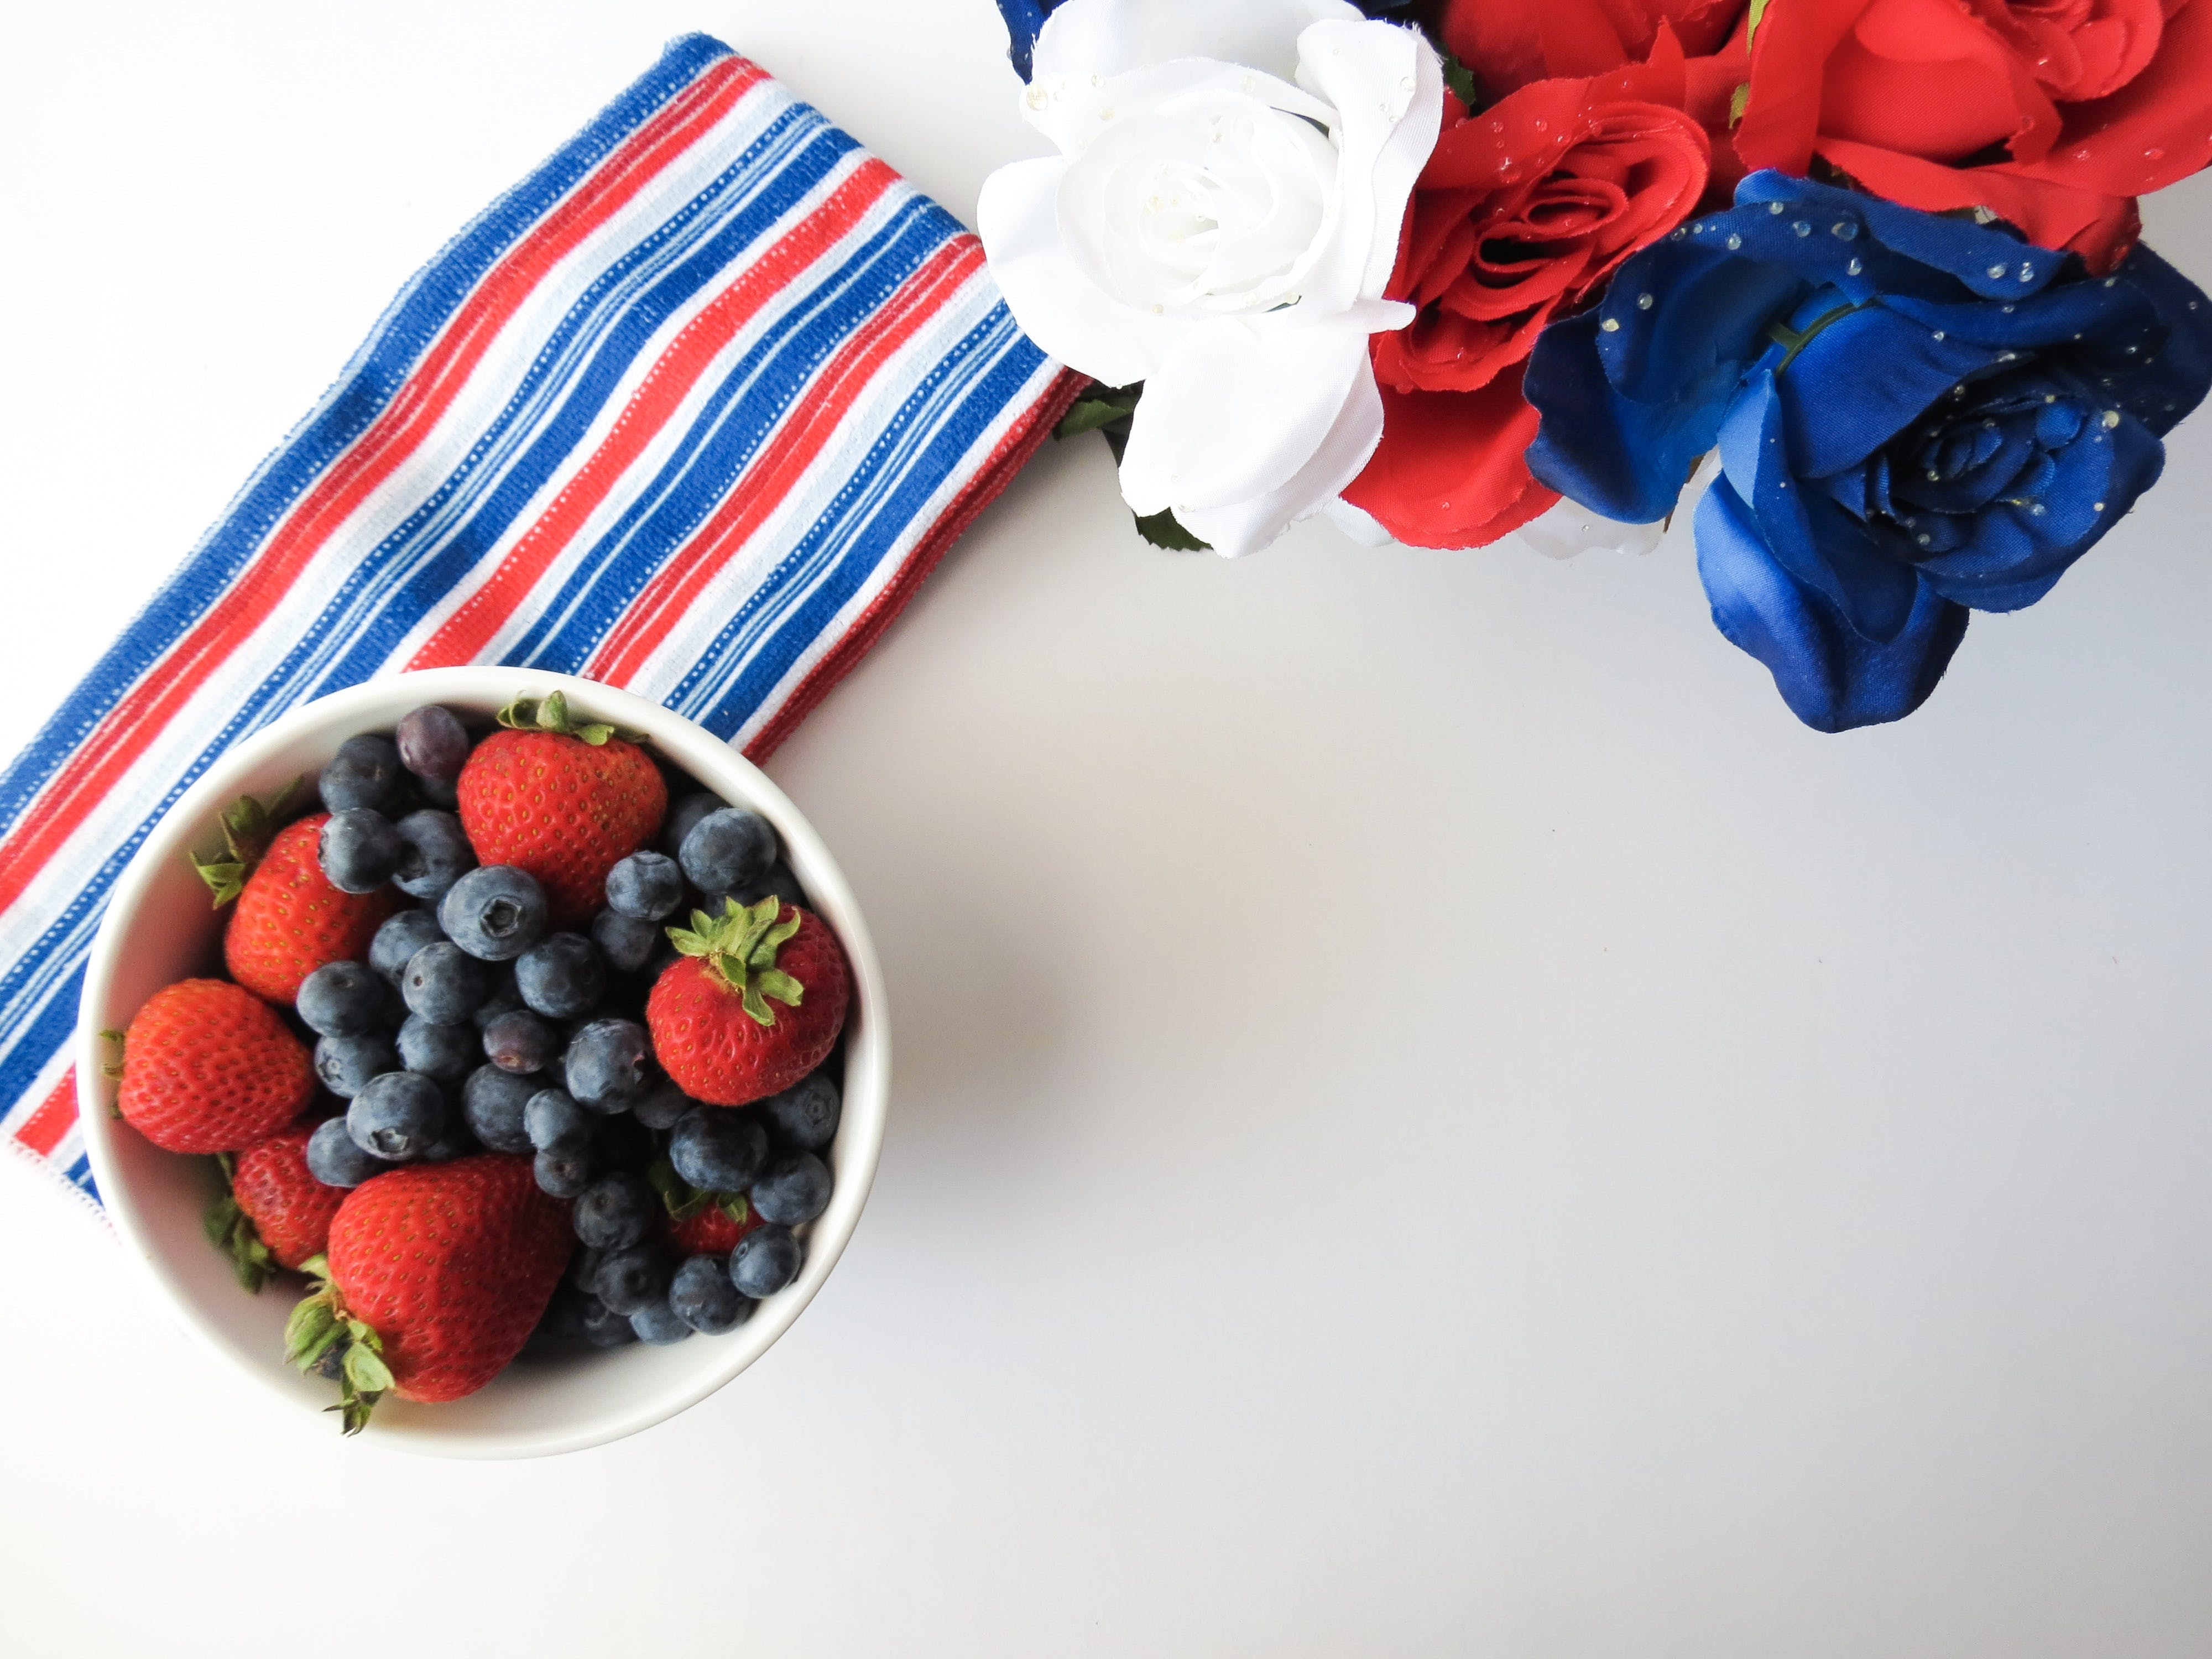 Blueberry and Strawberry Fruit Placed on Bowl